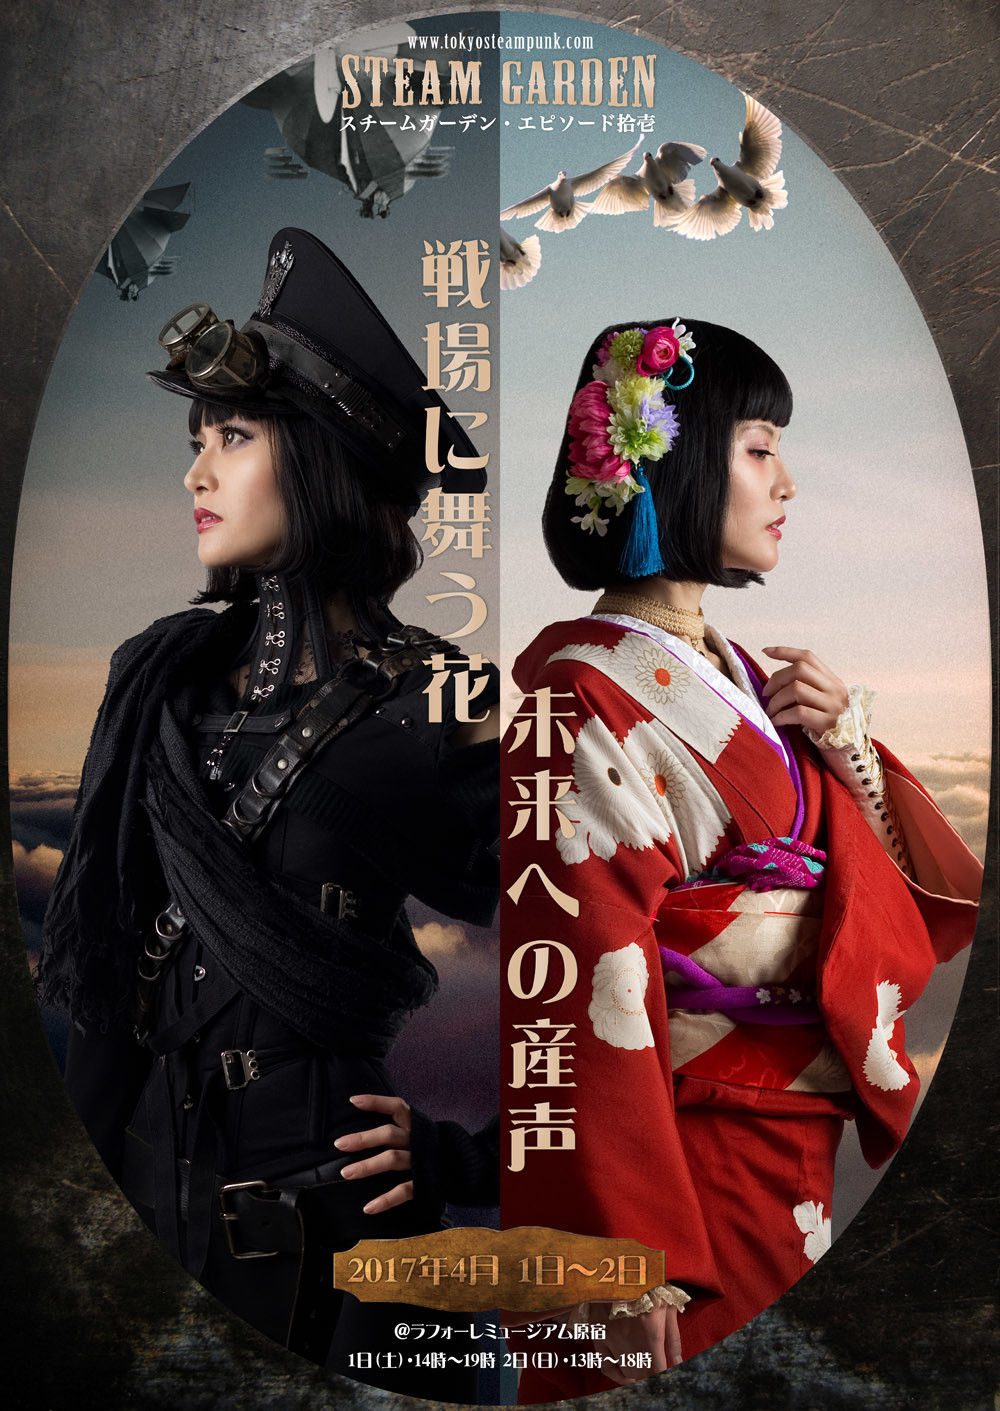 A World Of Traditional Japanese Fashion And Steampunk